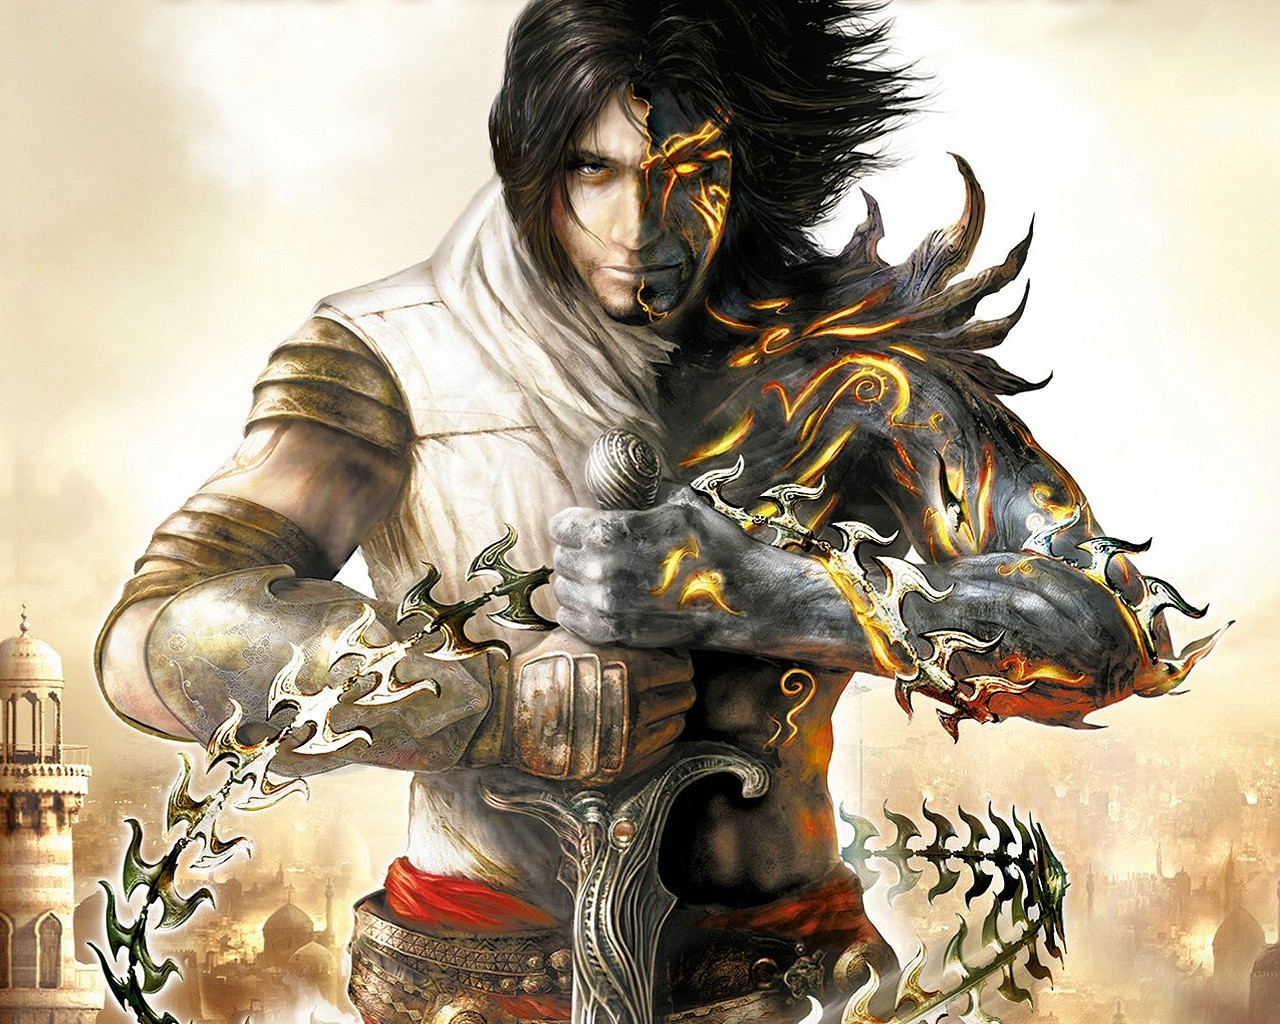 Prince Of Persia Hd Wallpaper Principe De Persia Pc